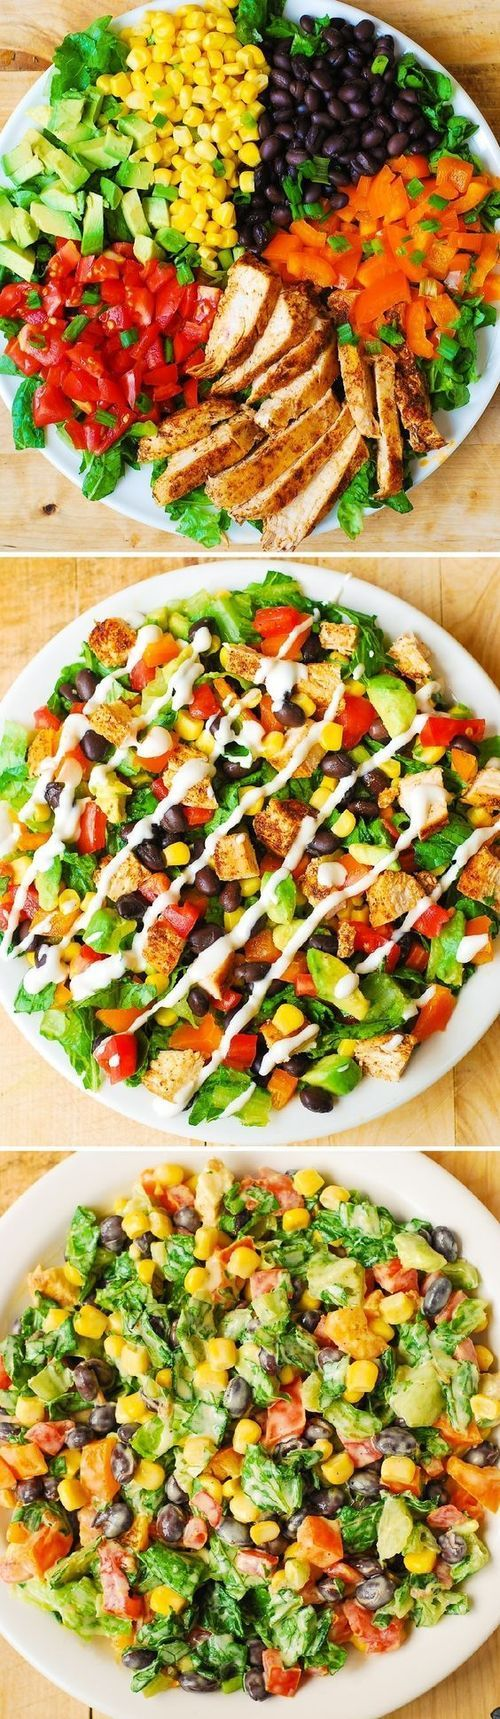 Southwestern Chopped Salad with Buttermilk Ranch Dressing Recipe / Buzz Inspired on imgfave